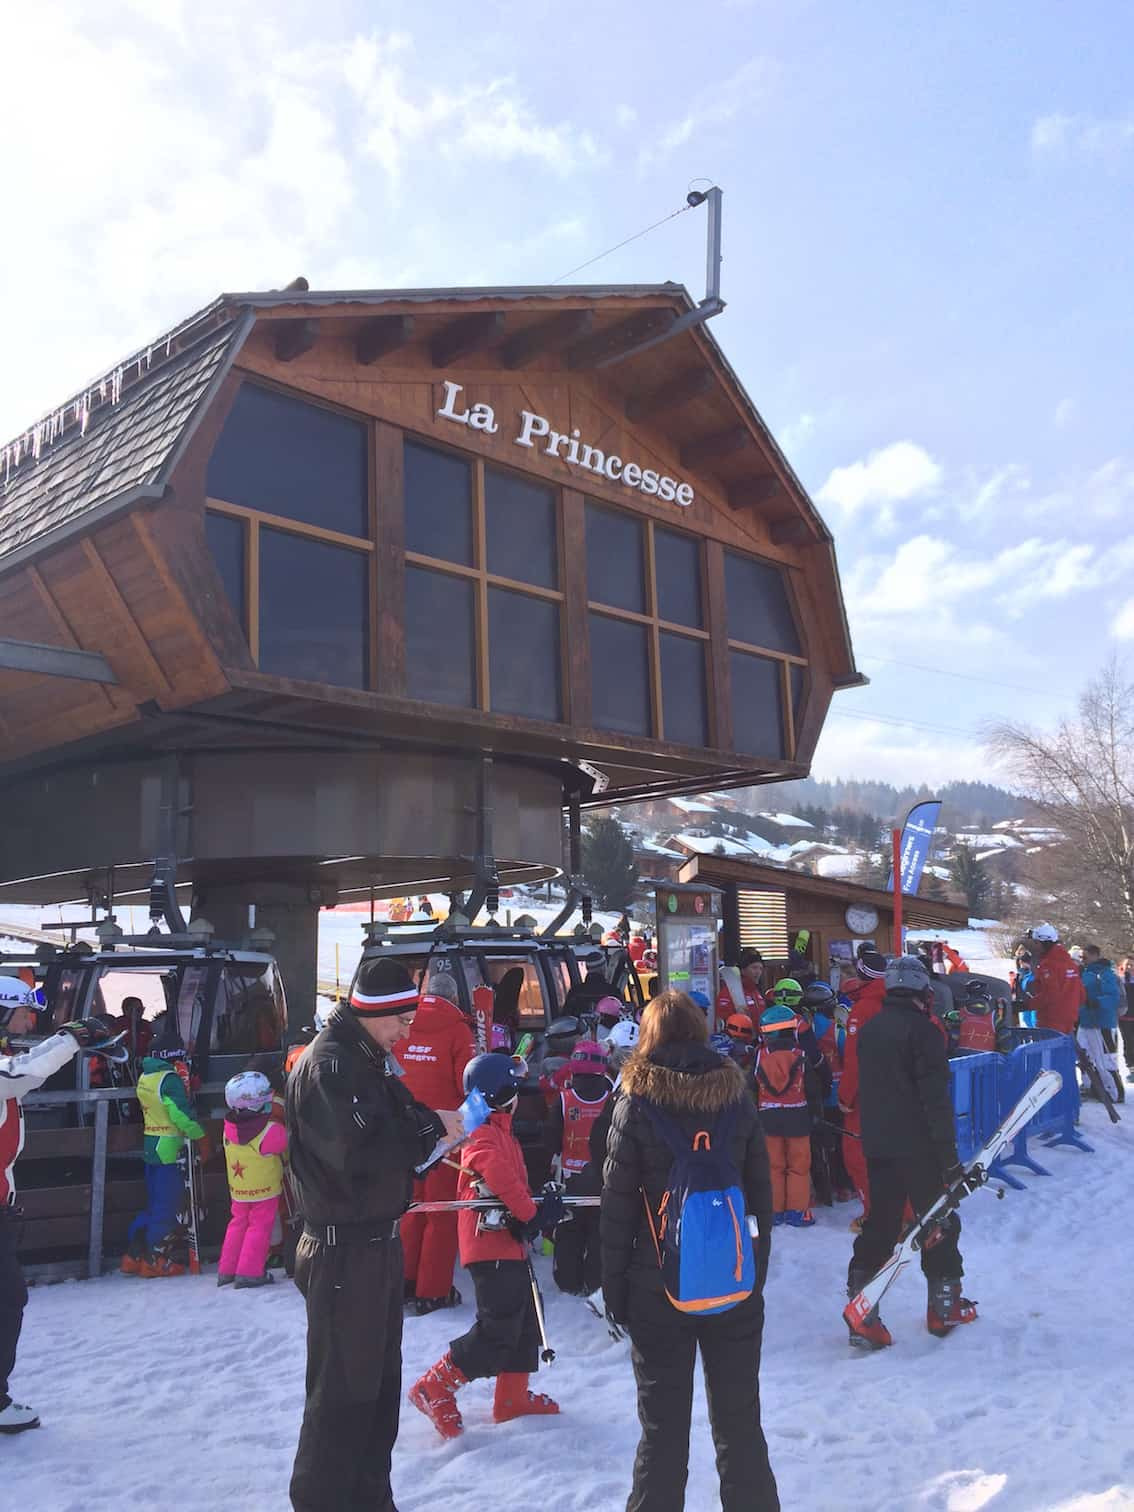 la princesse cable car takes you to the start point of the luge run